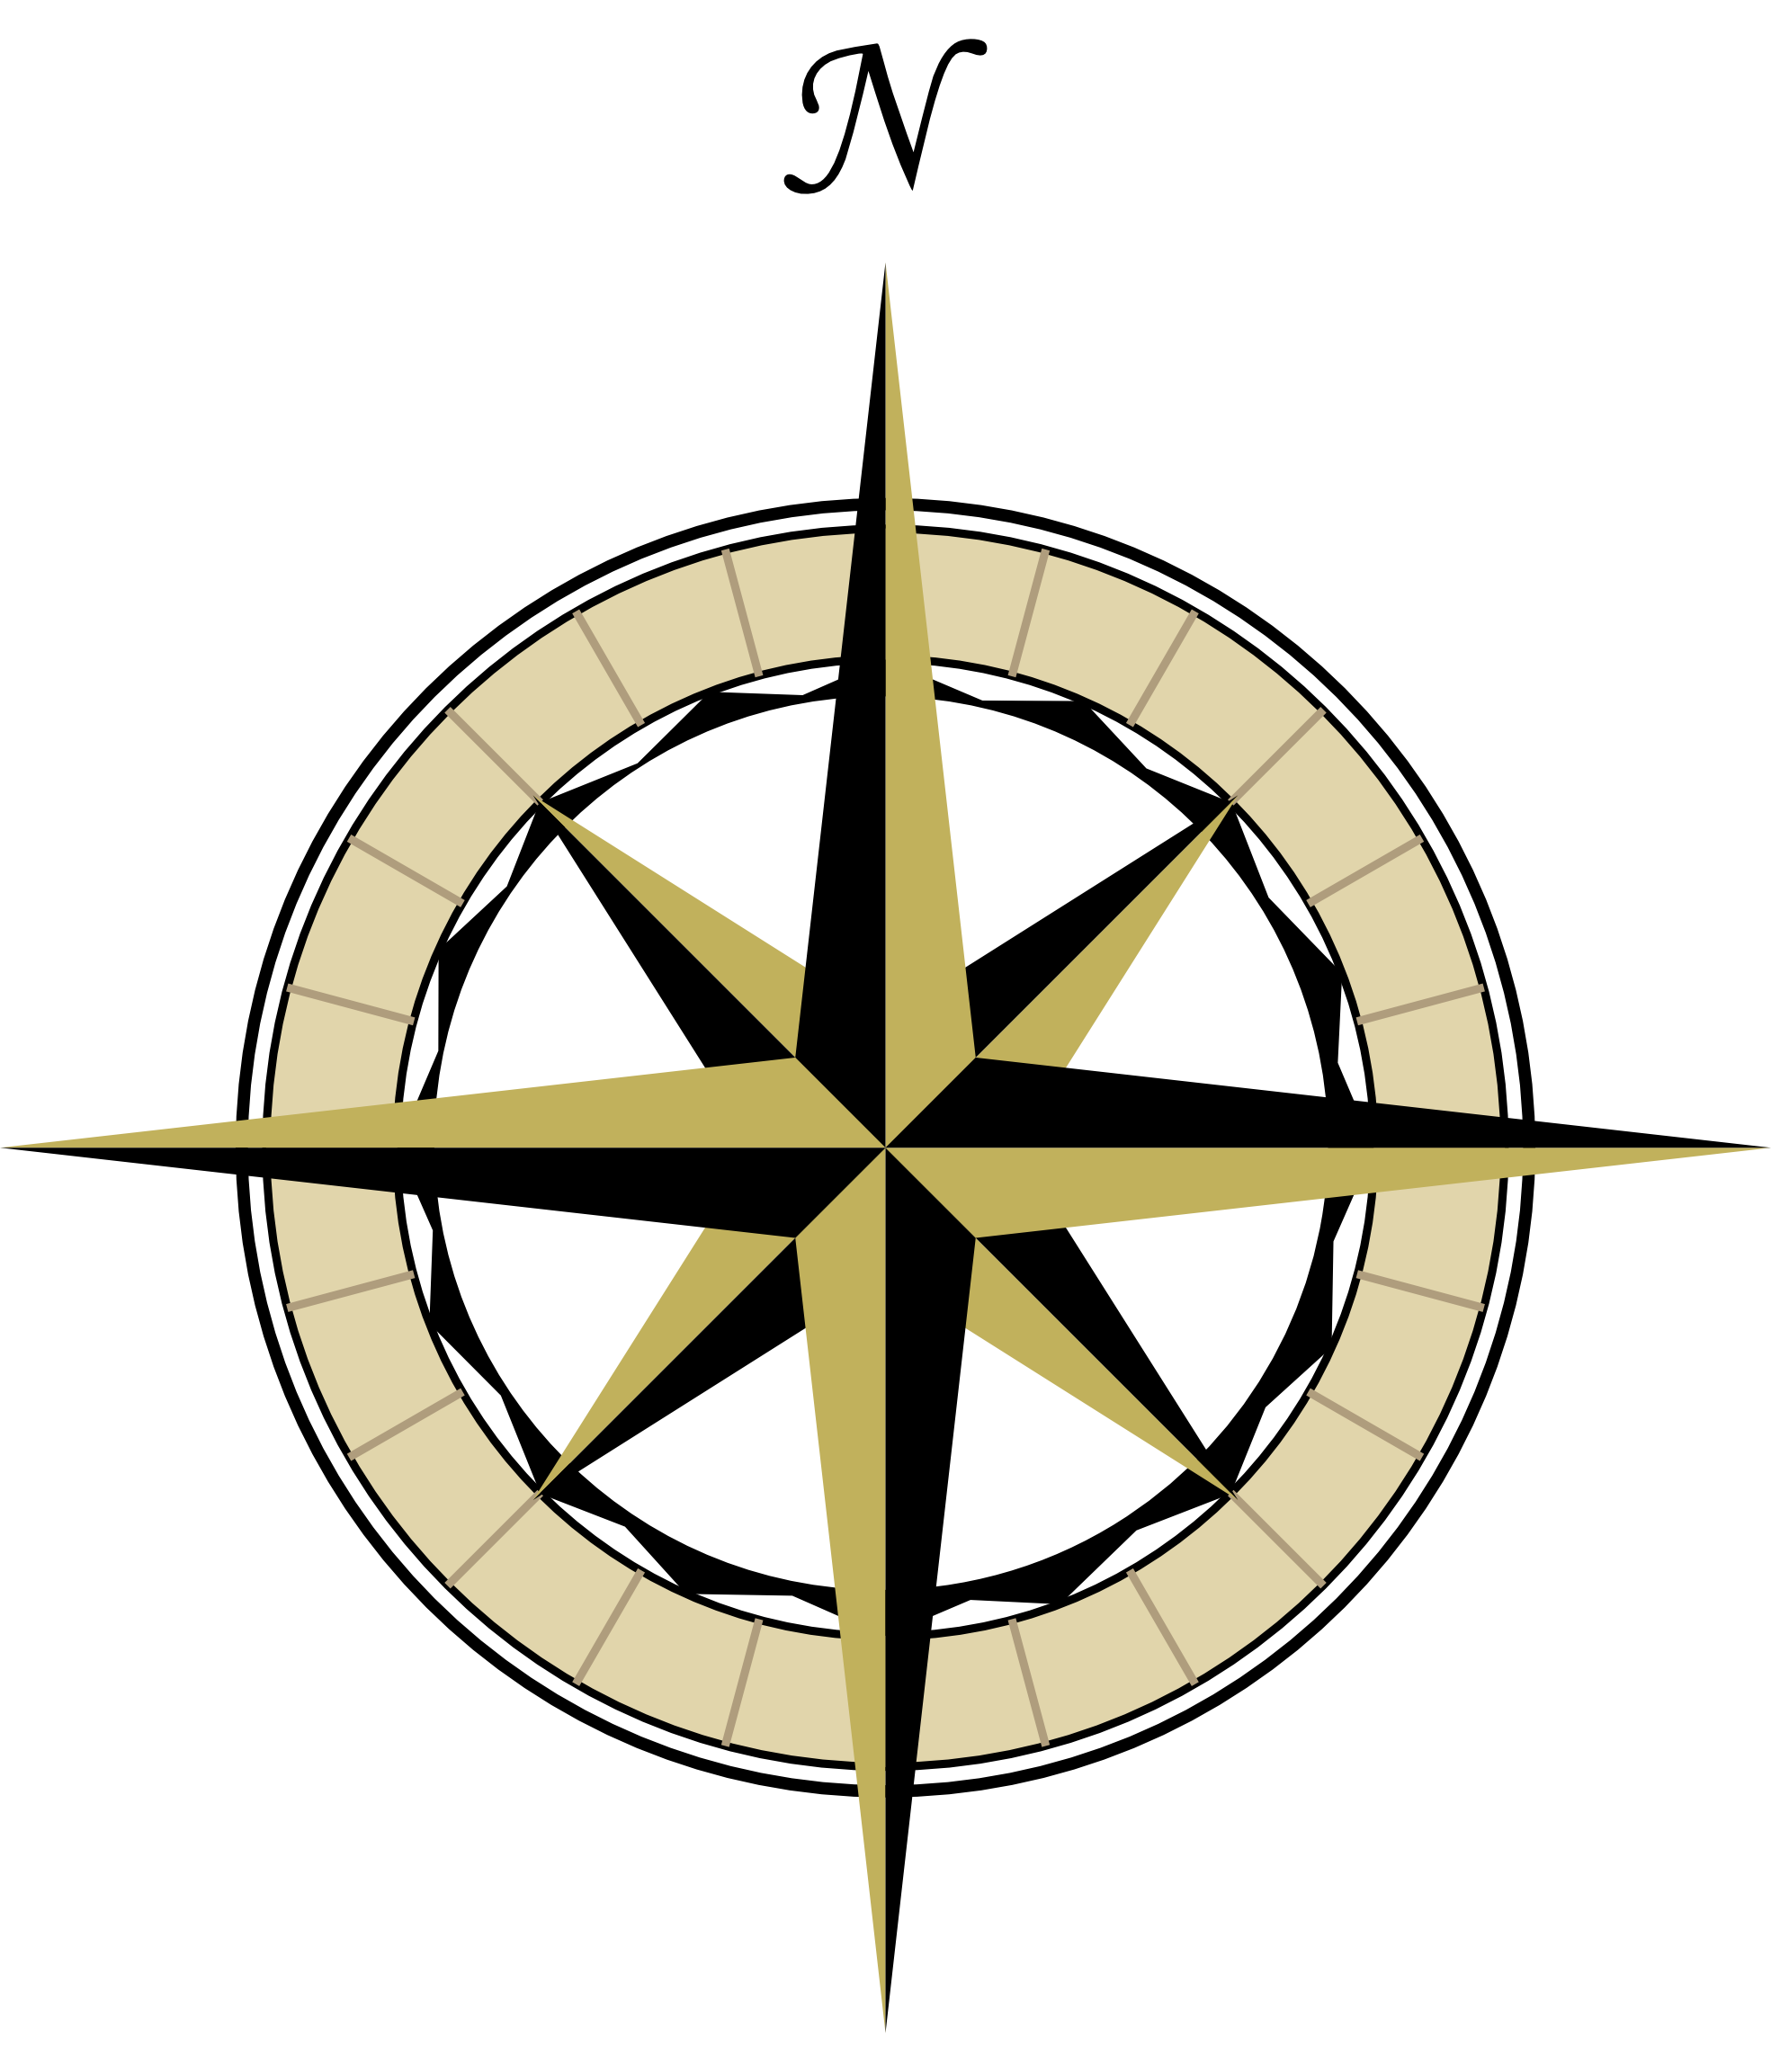 Free Compass Rose Clipart, Download Free Clip Art, Free Clip.